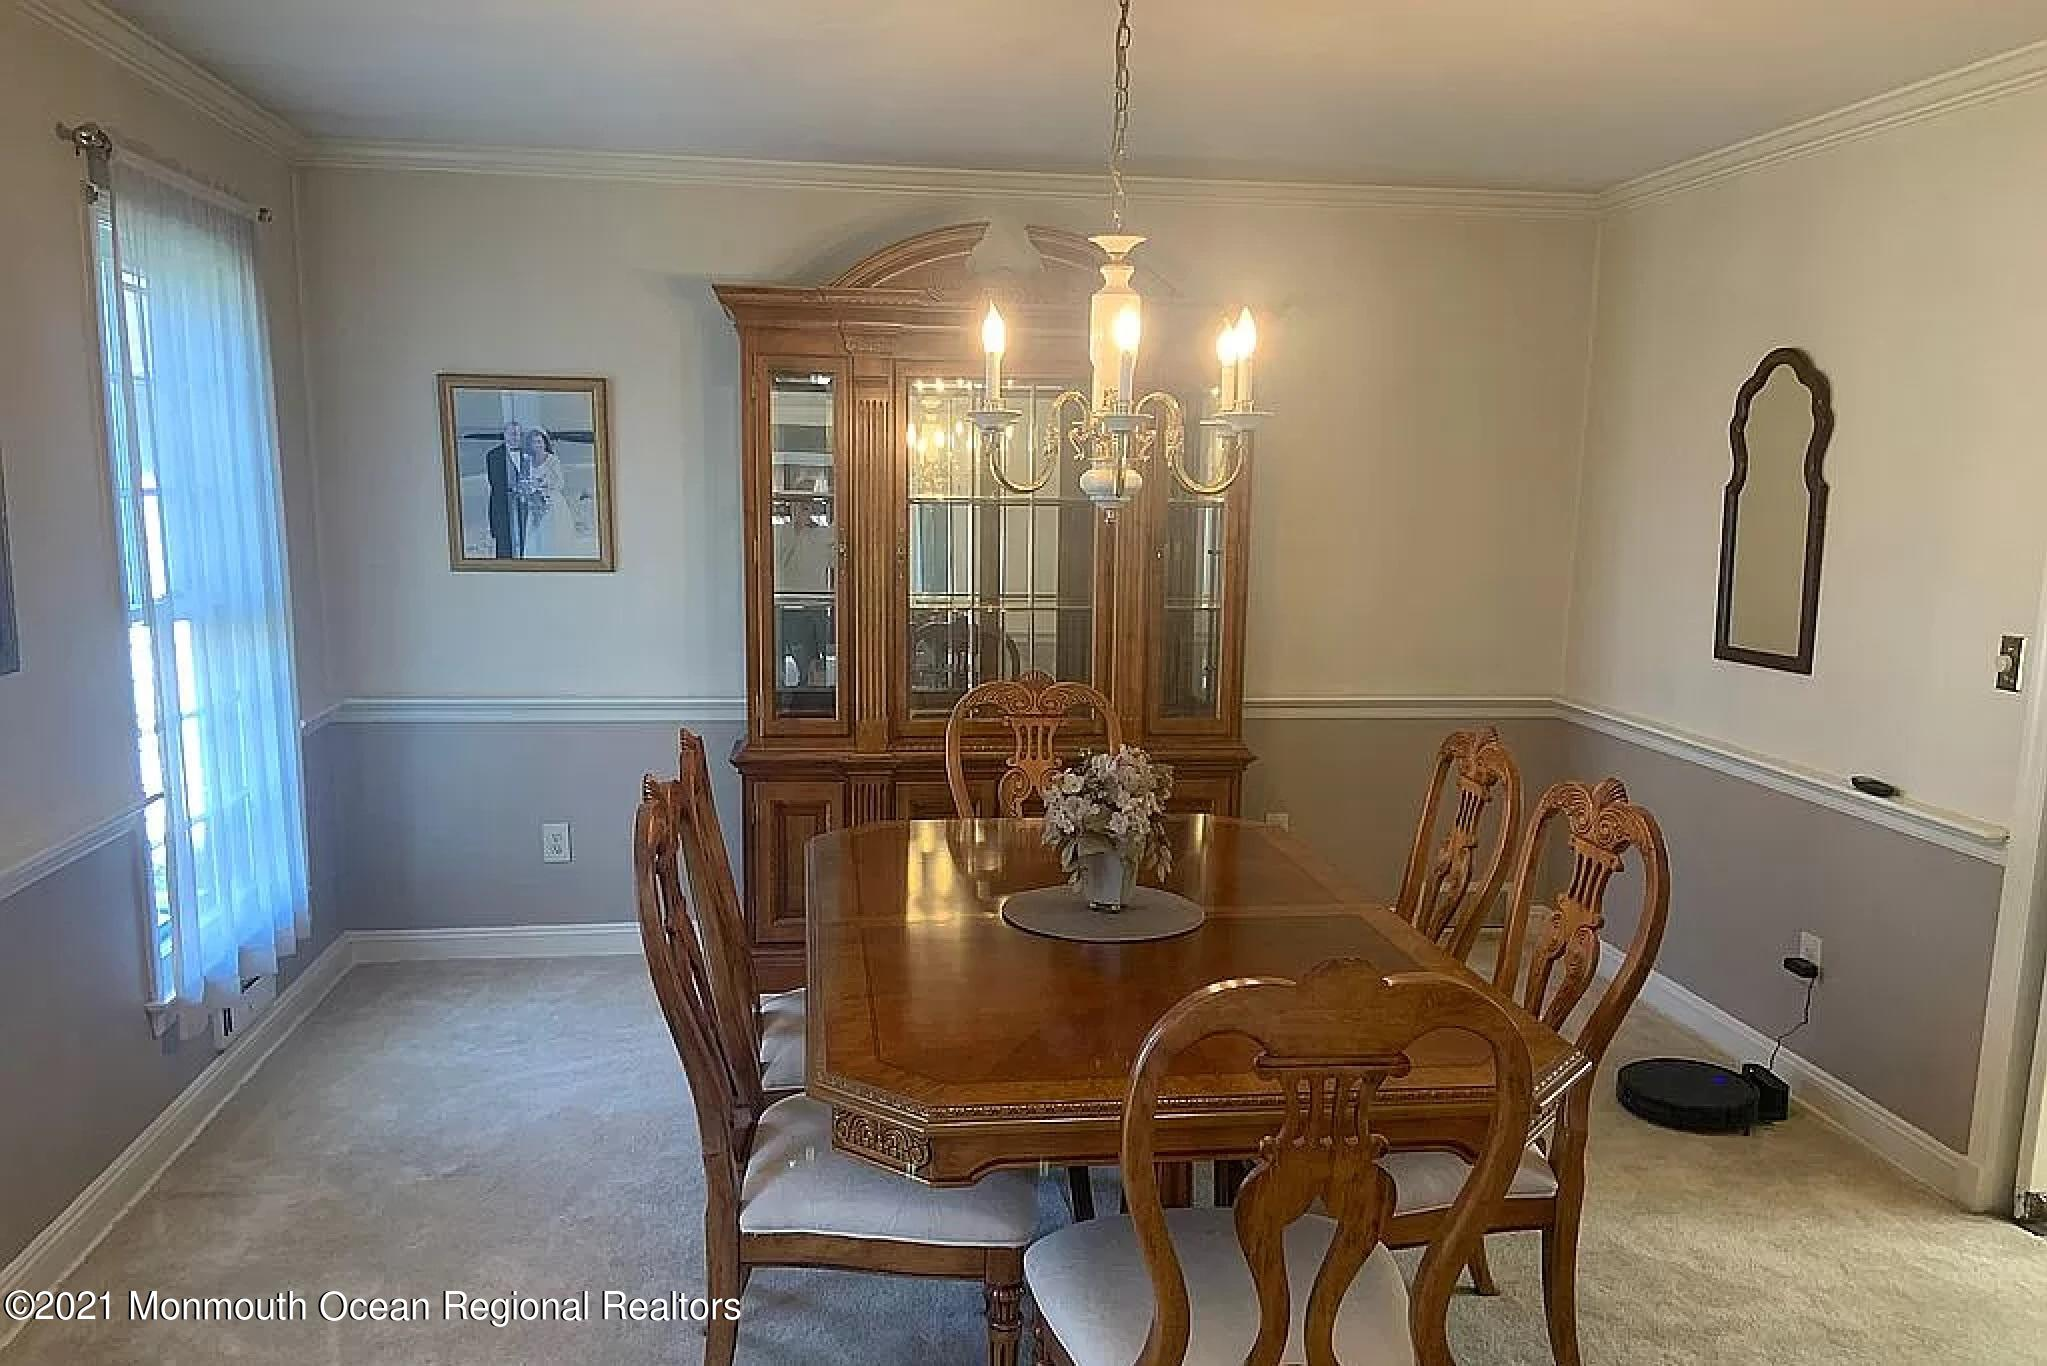 416 Jarob Court, Point Pleasant, New Jersey 08742, 5 Bedrooms Bedrooms, ,3 BathroomsBathrooms,Single Family,For Sale,416 Jarob Court,2,22110437